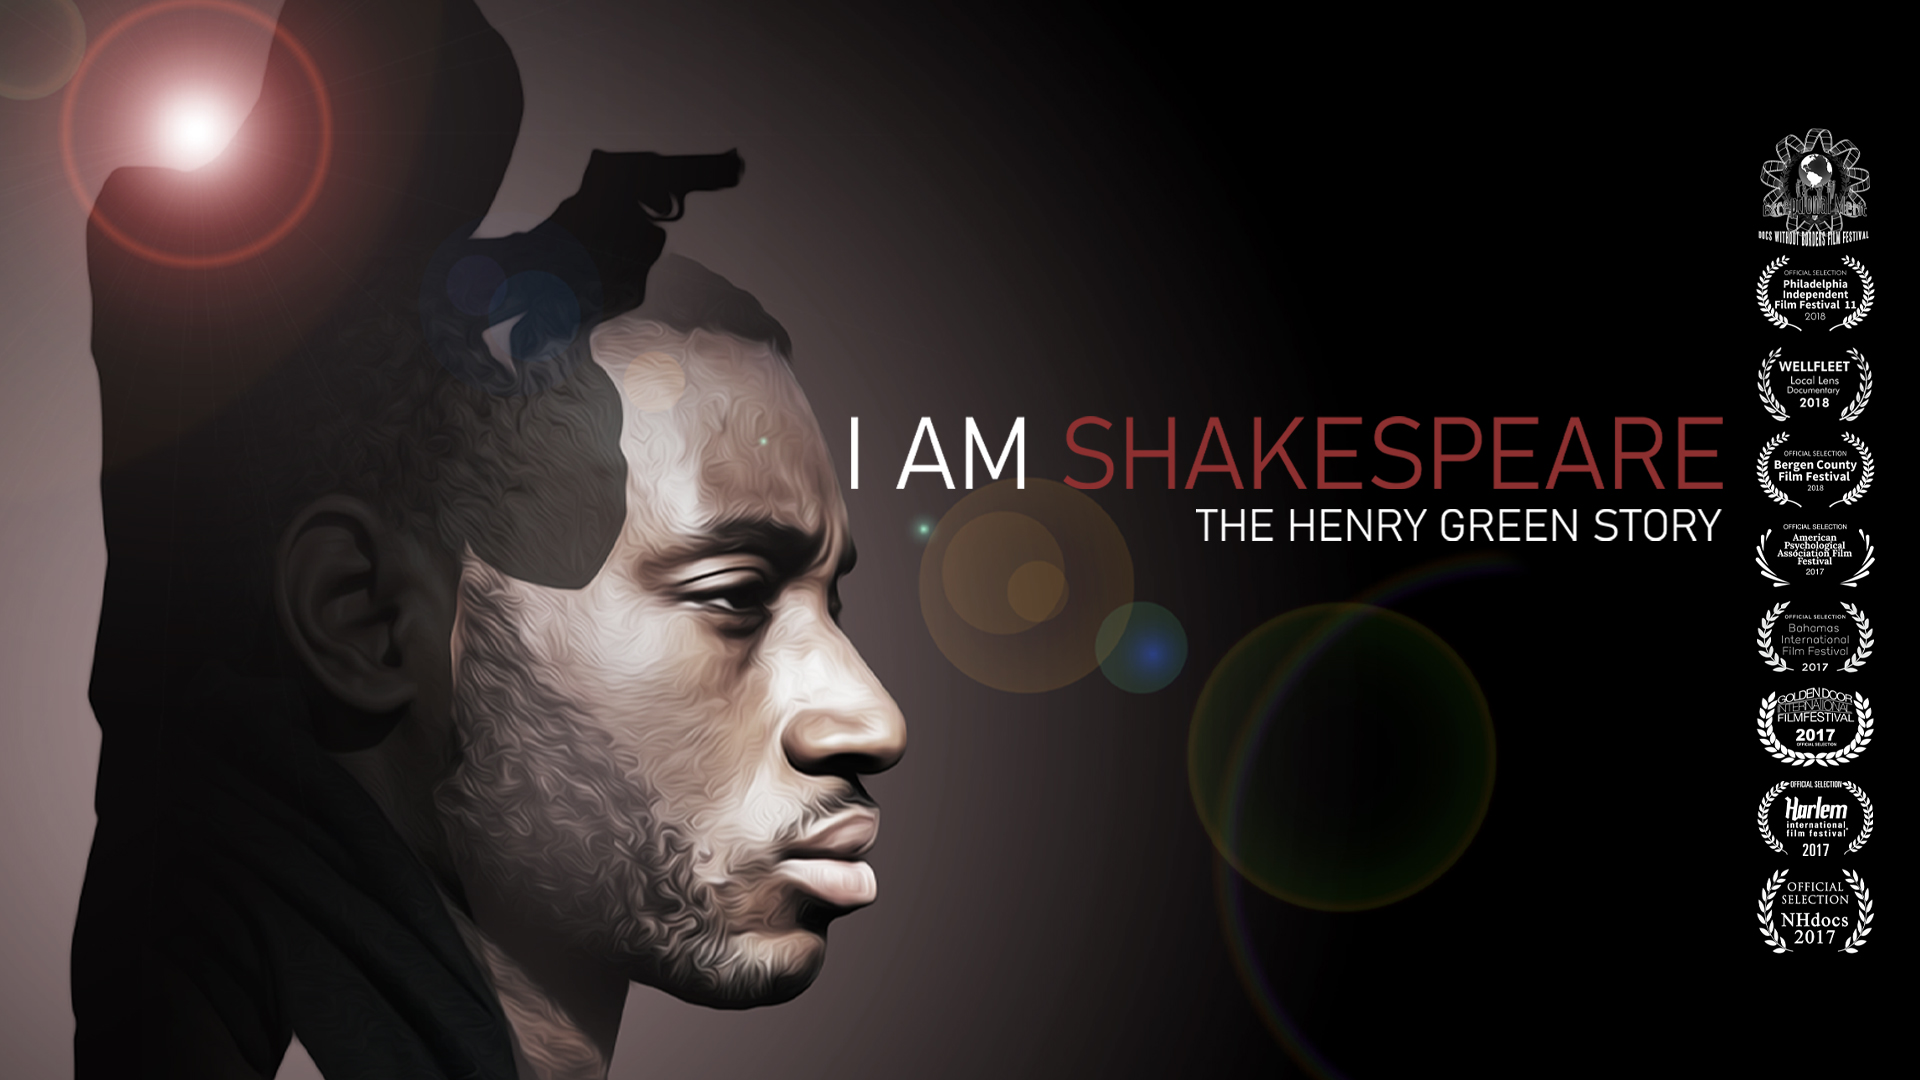 I Am Shakespeare (The Henry Green Story)